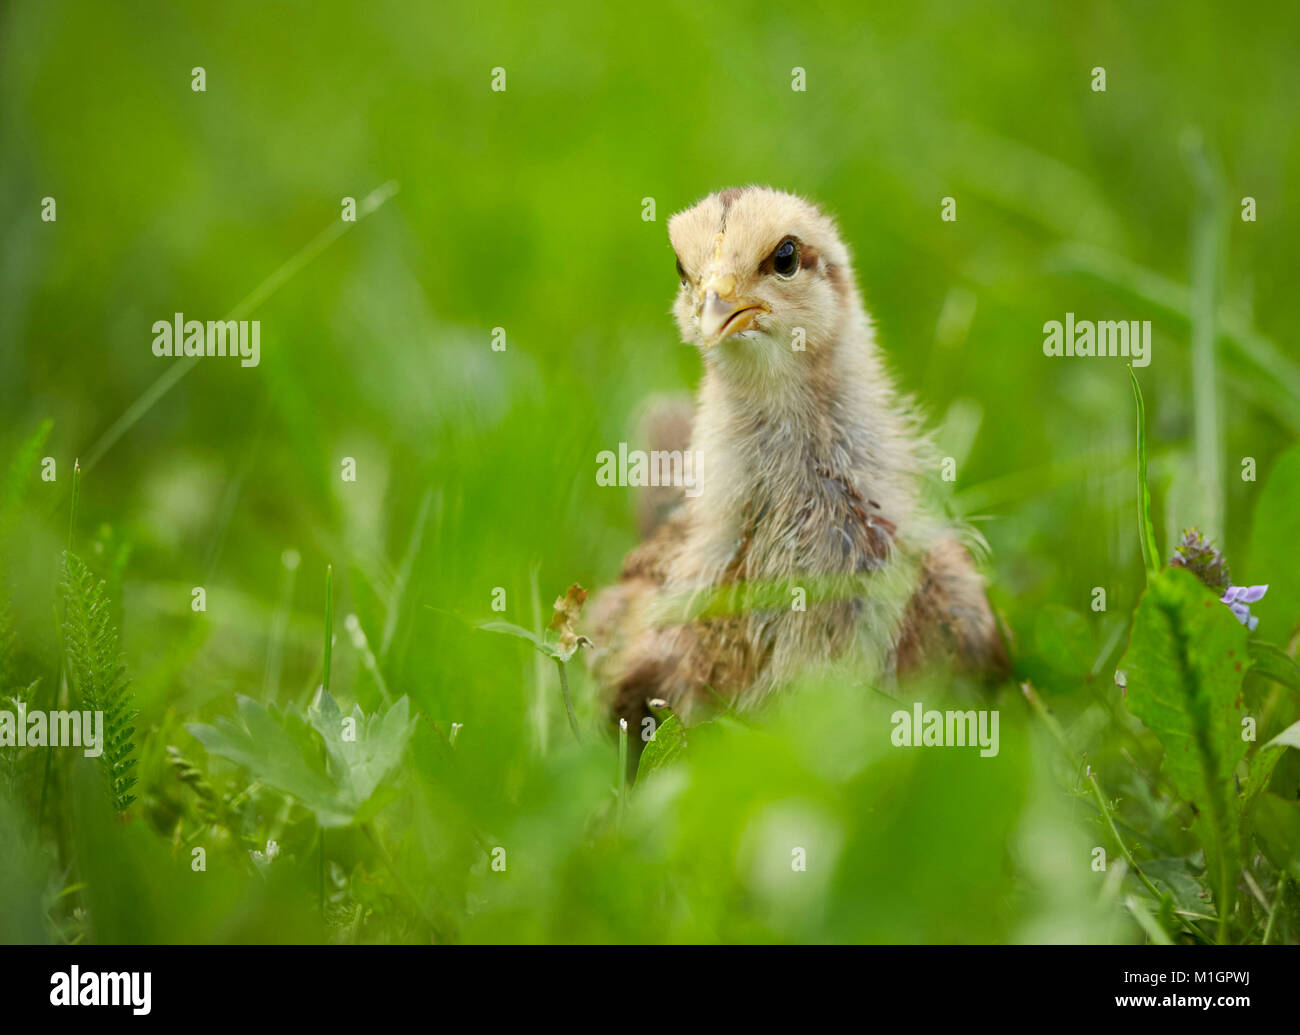 Welsummer Chicken. Chicken standing on a meadow. Germany - Stock Image